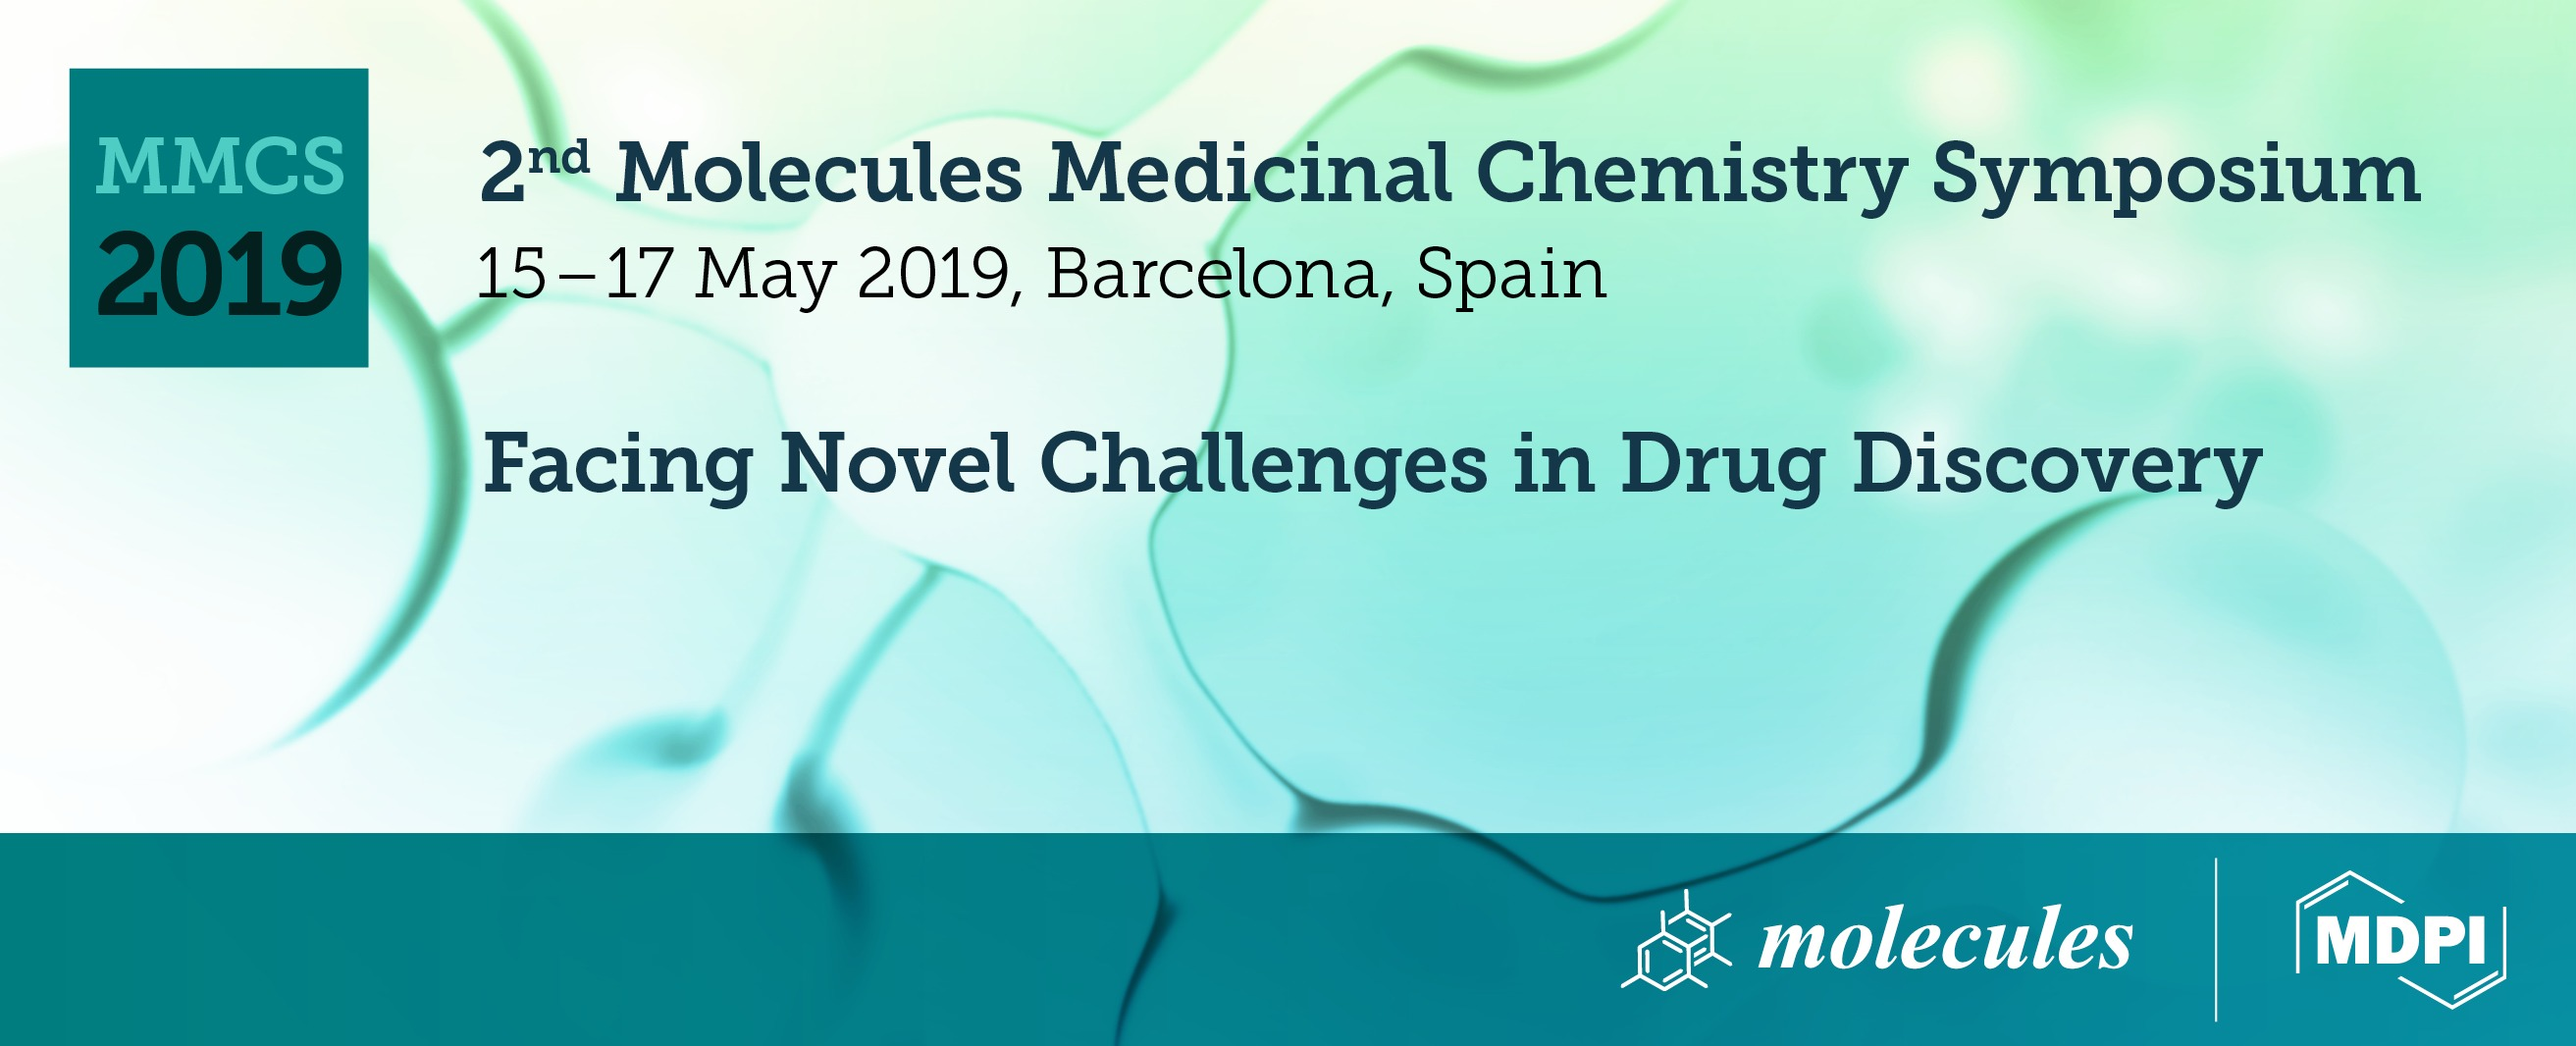 2nd Molecules Medicinal Chemistry Symposium - Facing Novel Challenges in Drug Discovery - Avinguda Diagonal, 547, 08029 Barcelona